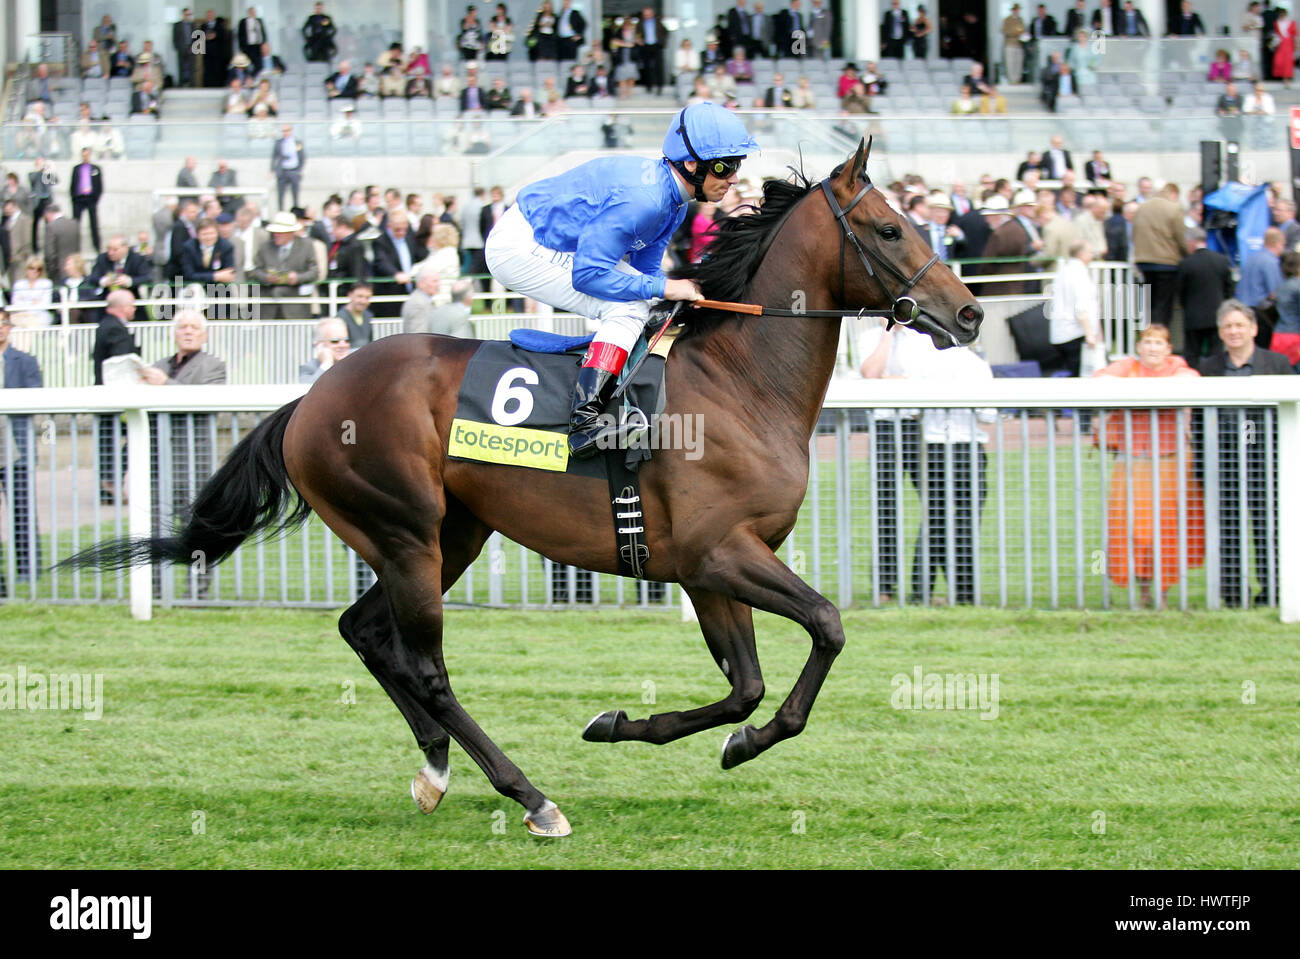 YOUNG PRETENDER RIDDEN BY L. DETTORI YORK RACECORSE YORK ENGLAND 15 May 2008 - Stock Image